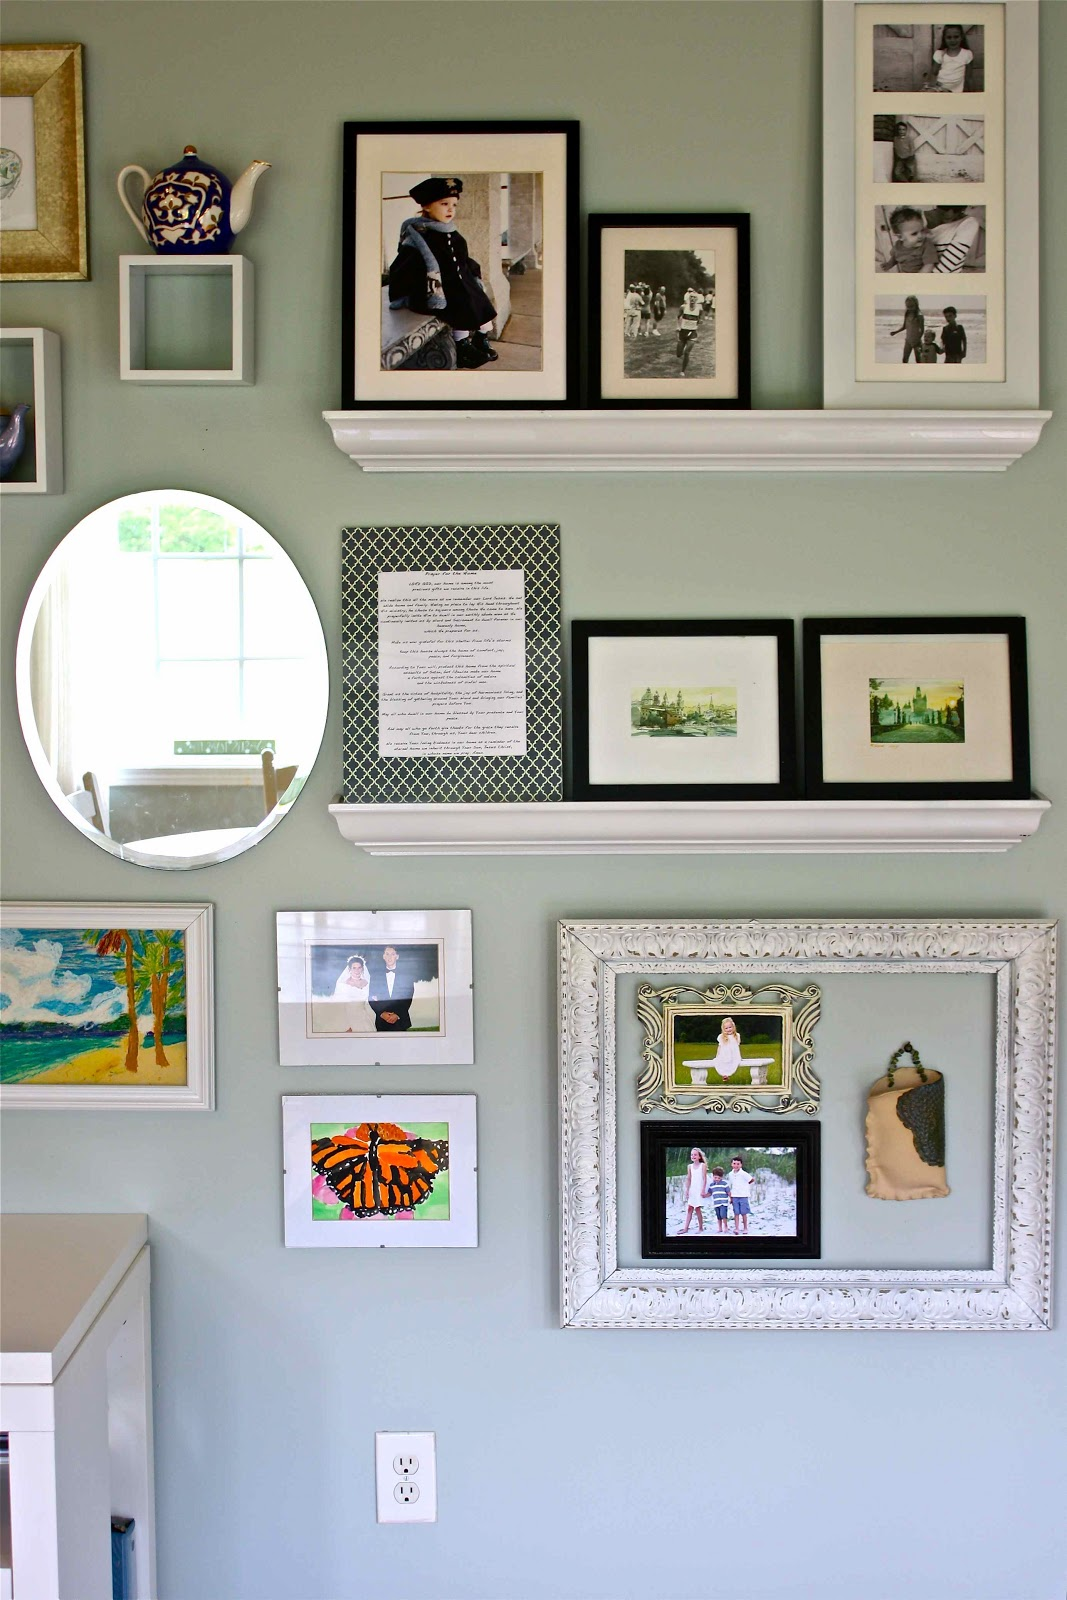 Homes updates anatomy of a gallery wall group tiny things inside larger frames or on shelves scale is important our house is small but this room is huge it comprises two thirds of our house jeuxipadfo Choice Image